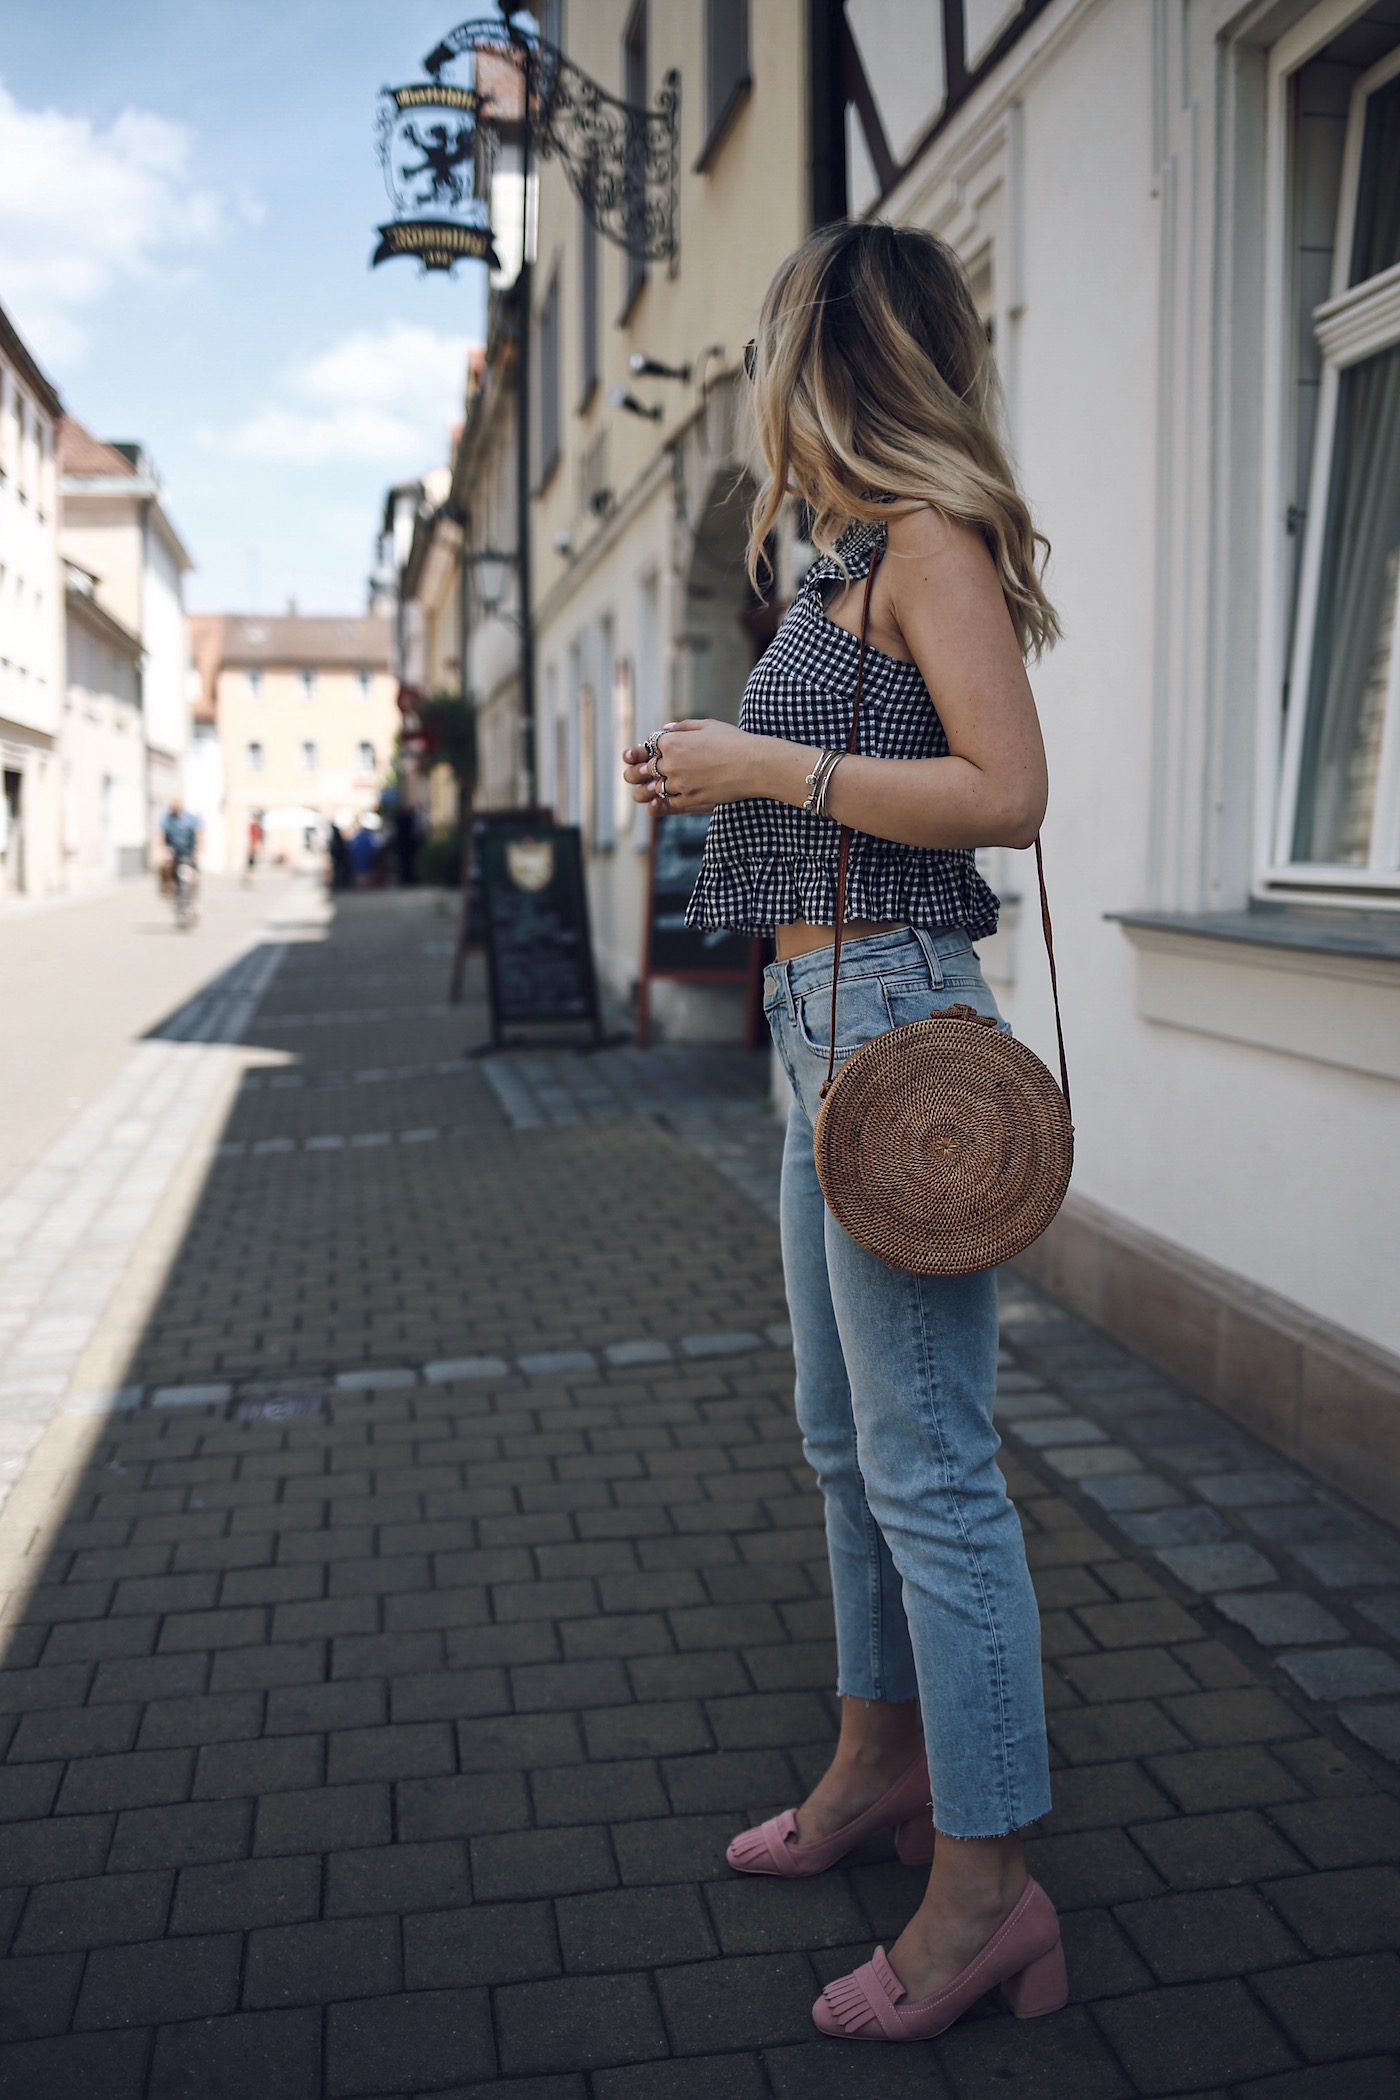 Inconvenient truth about blogging | Want Get Repeat Fashion Blog from Germany Nürnberg Erlangen